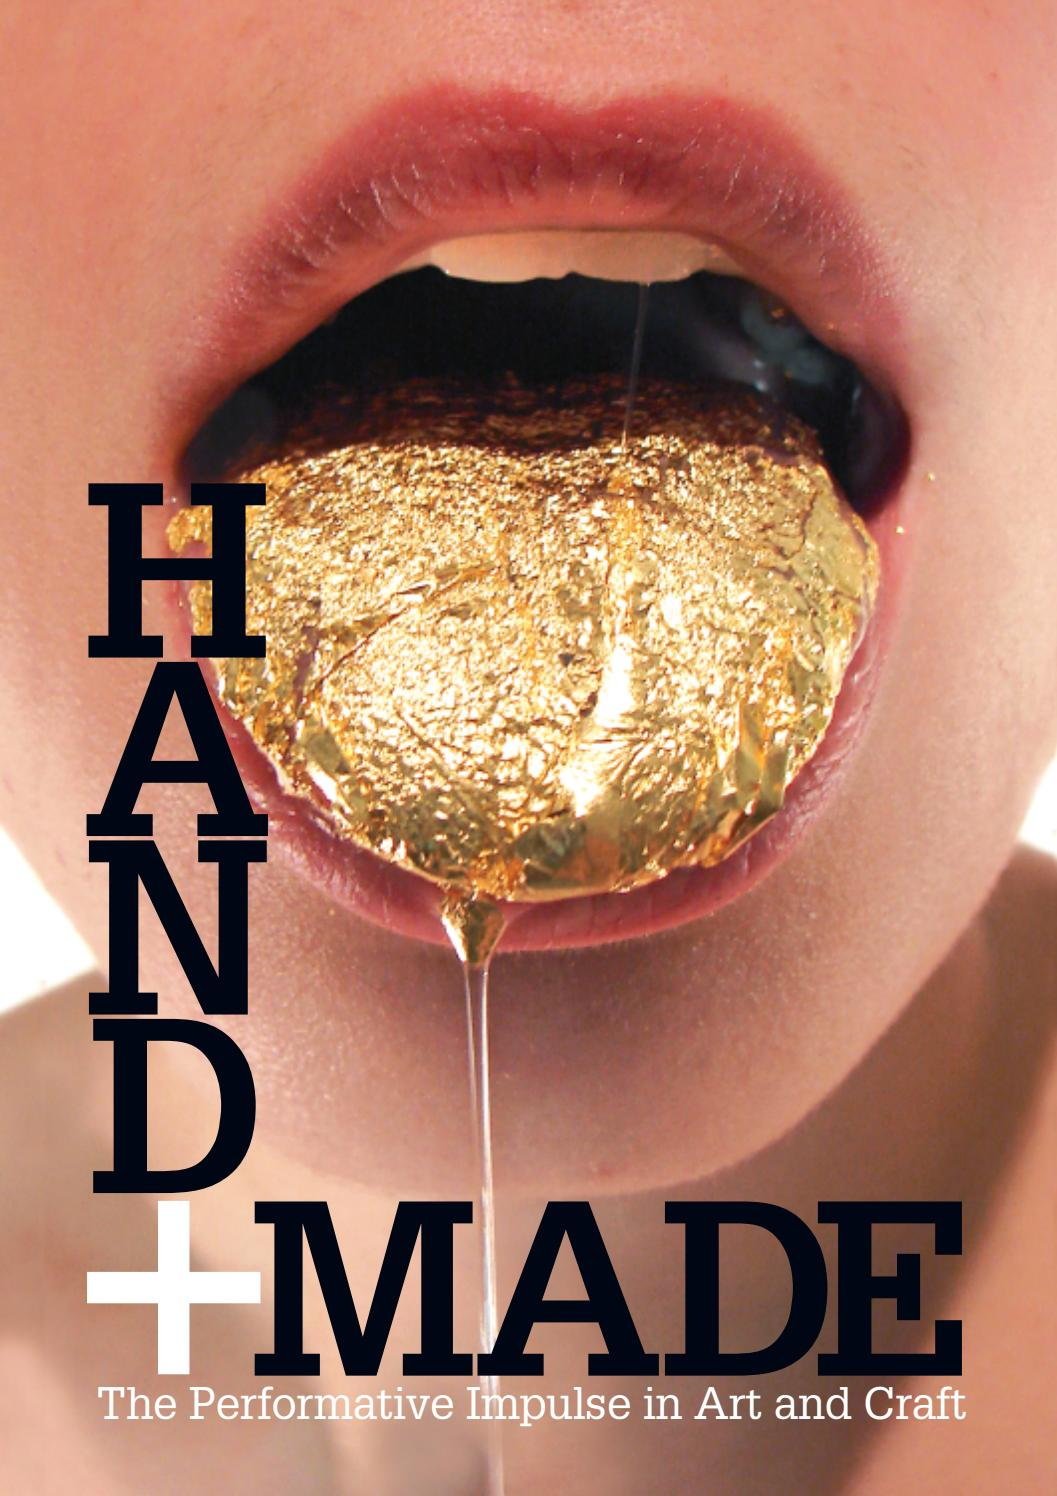 Hand+Made: The Performative Impulse in Art and Craft by